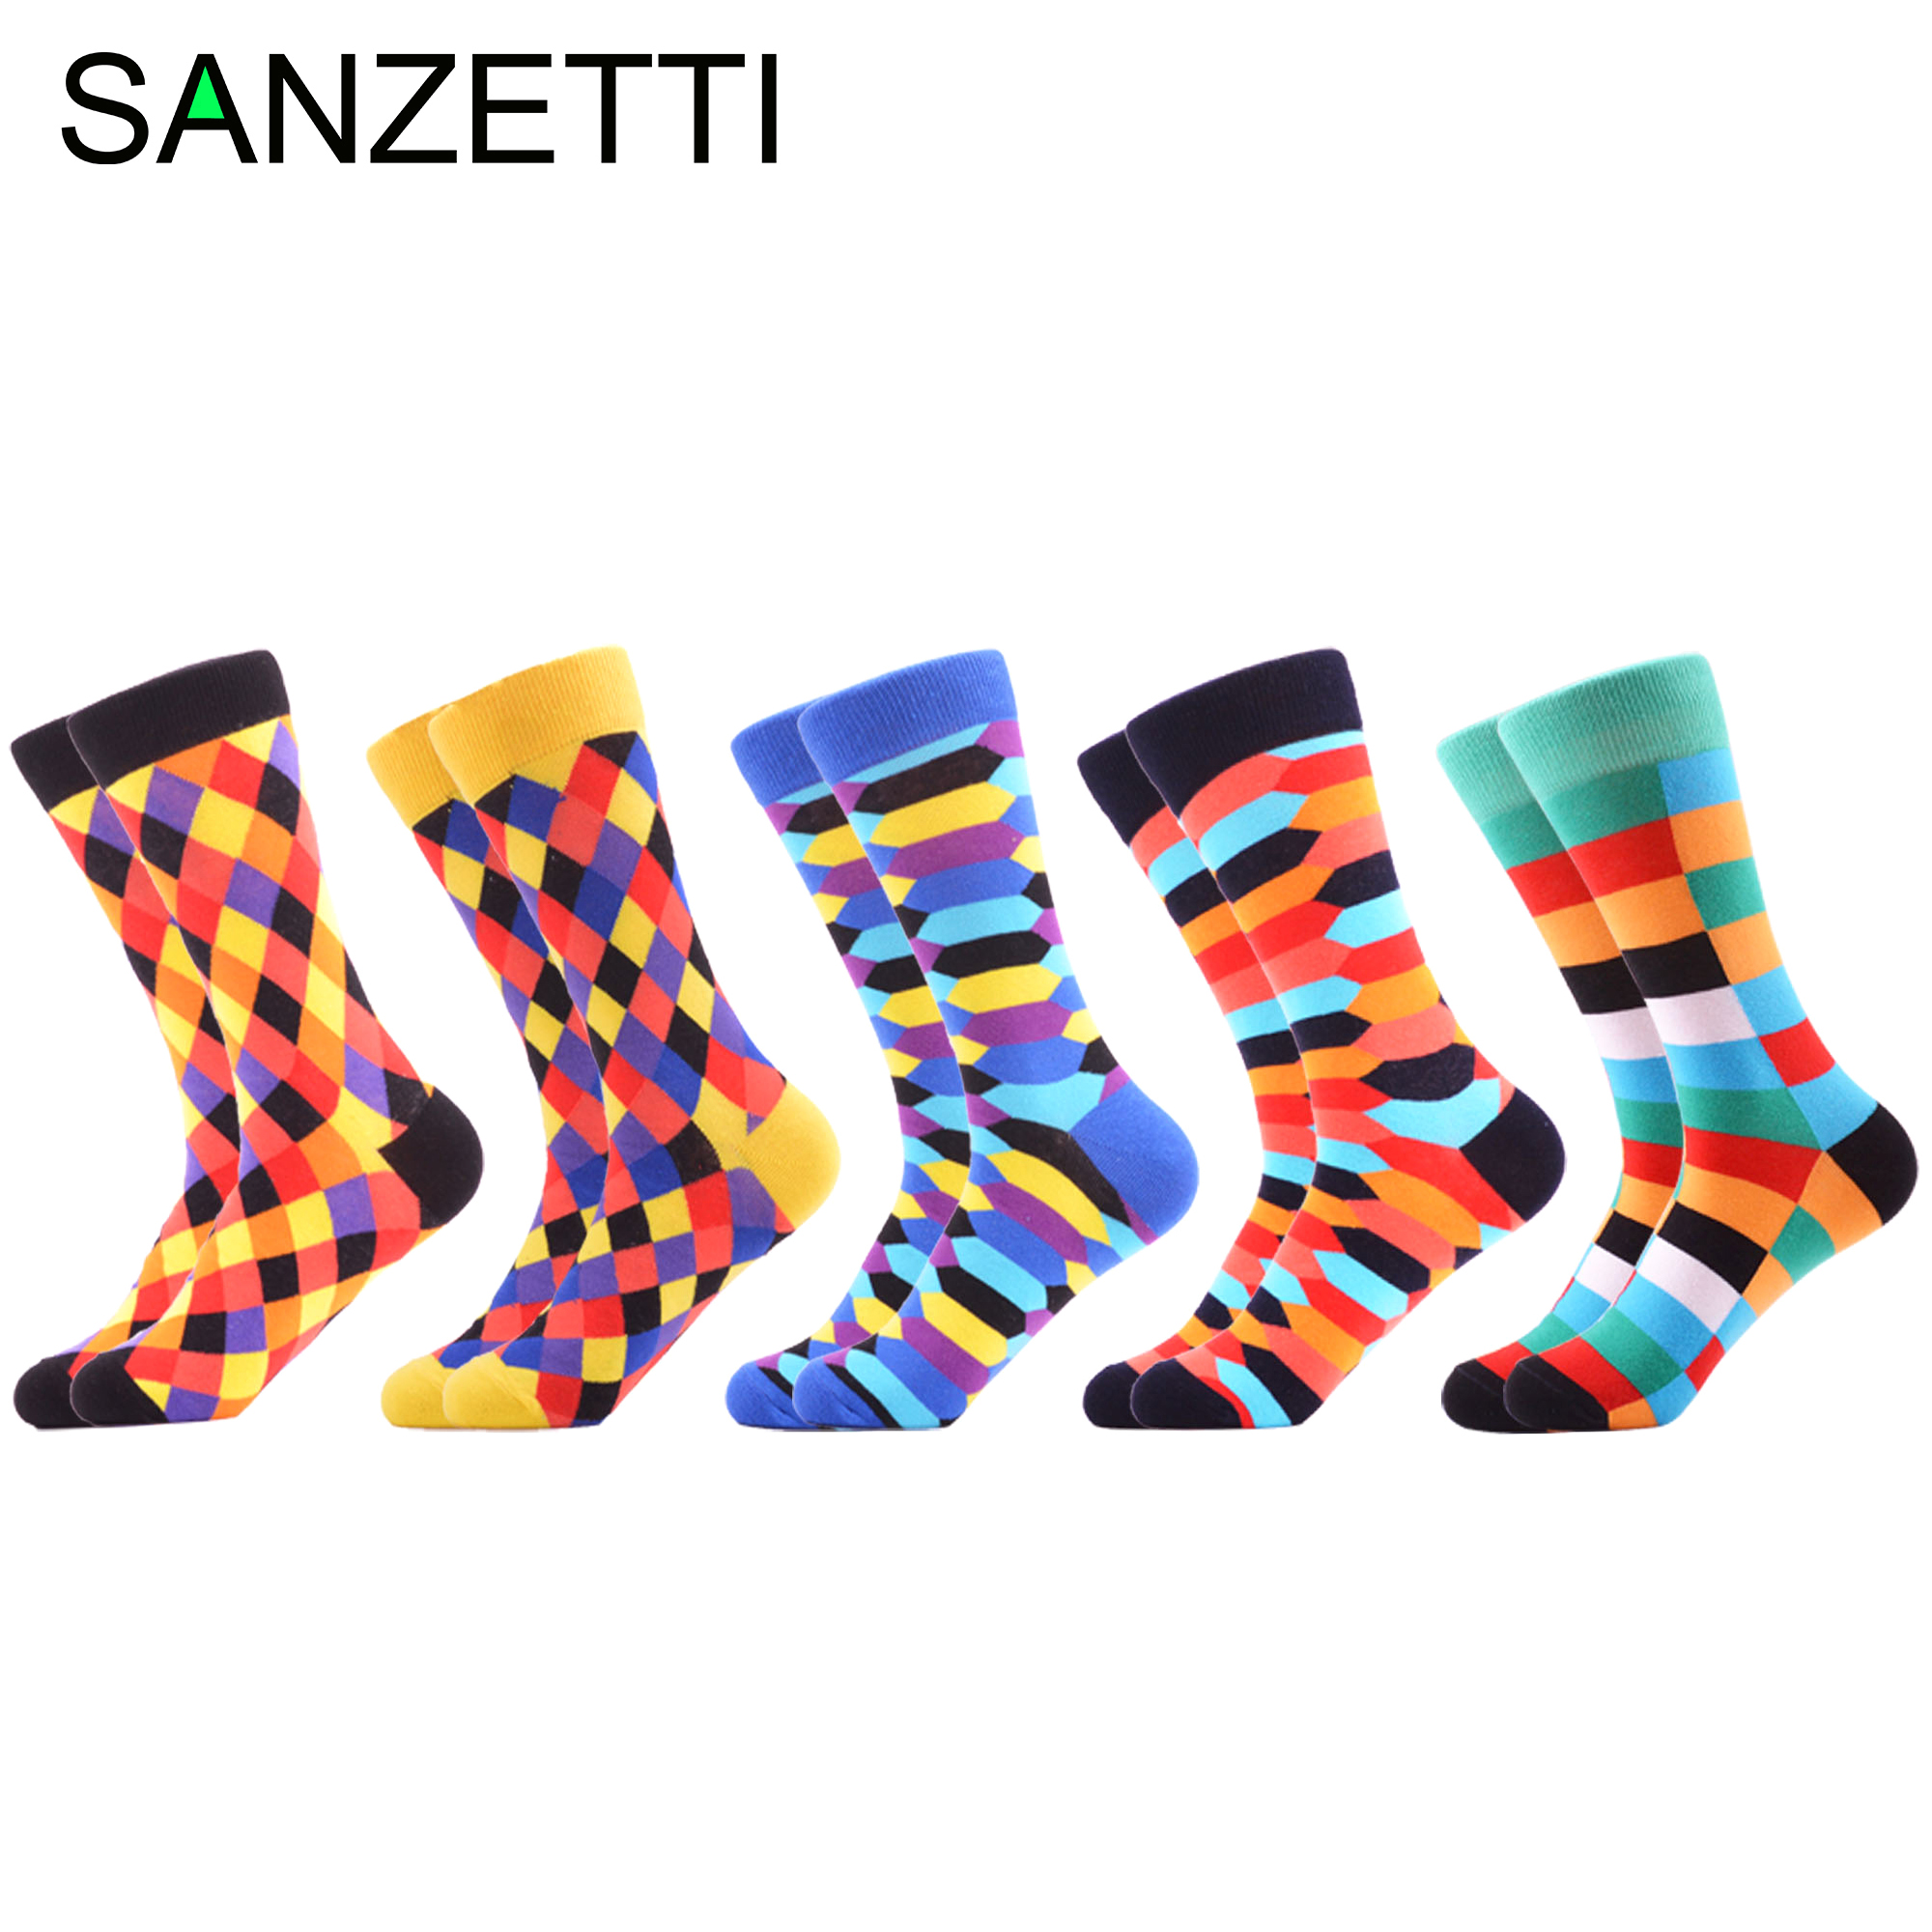 SANZETTI 5 Pairs/2020 New Happy Men's Causal Socks Novelty Irregular Rhombus Pattern Rectangle Dress Socks Gift Wedding Socks